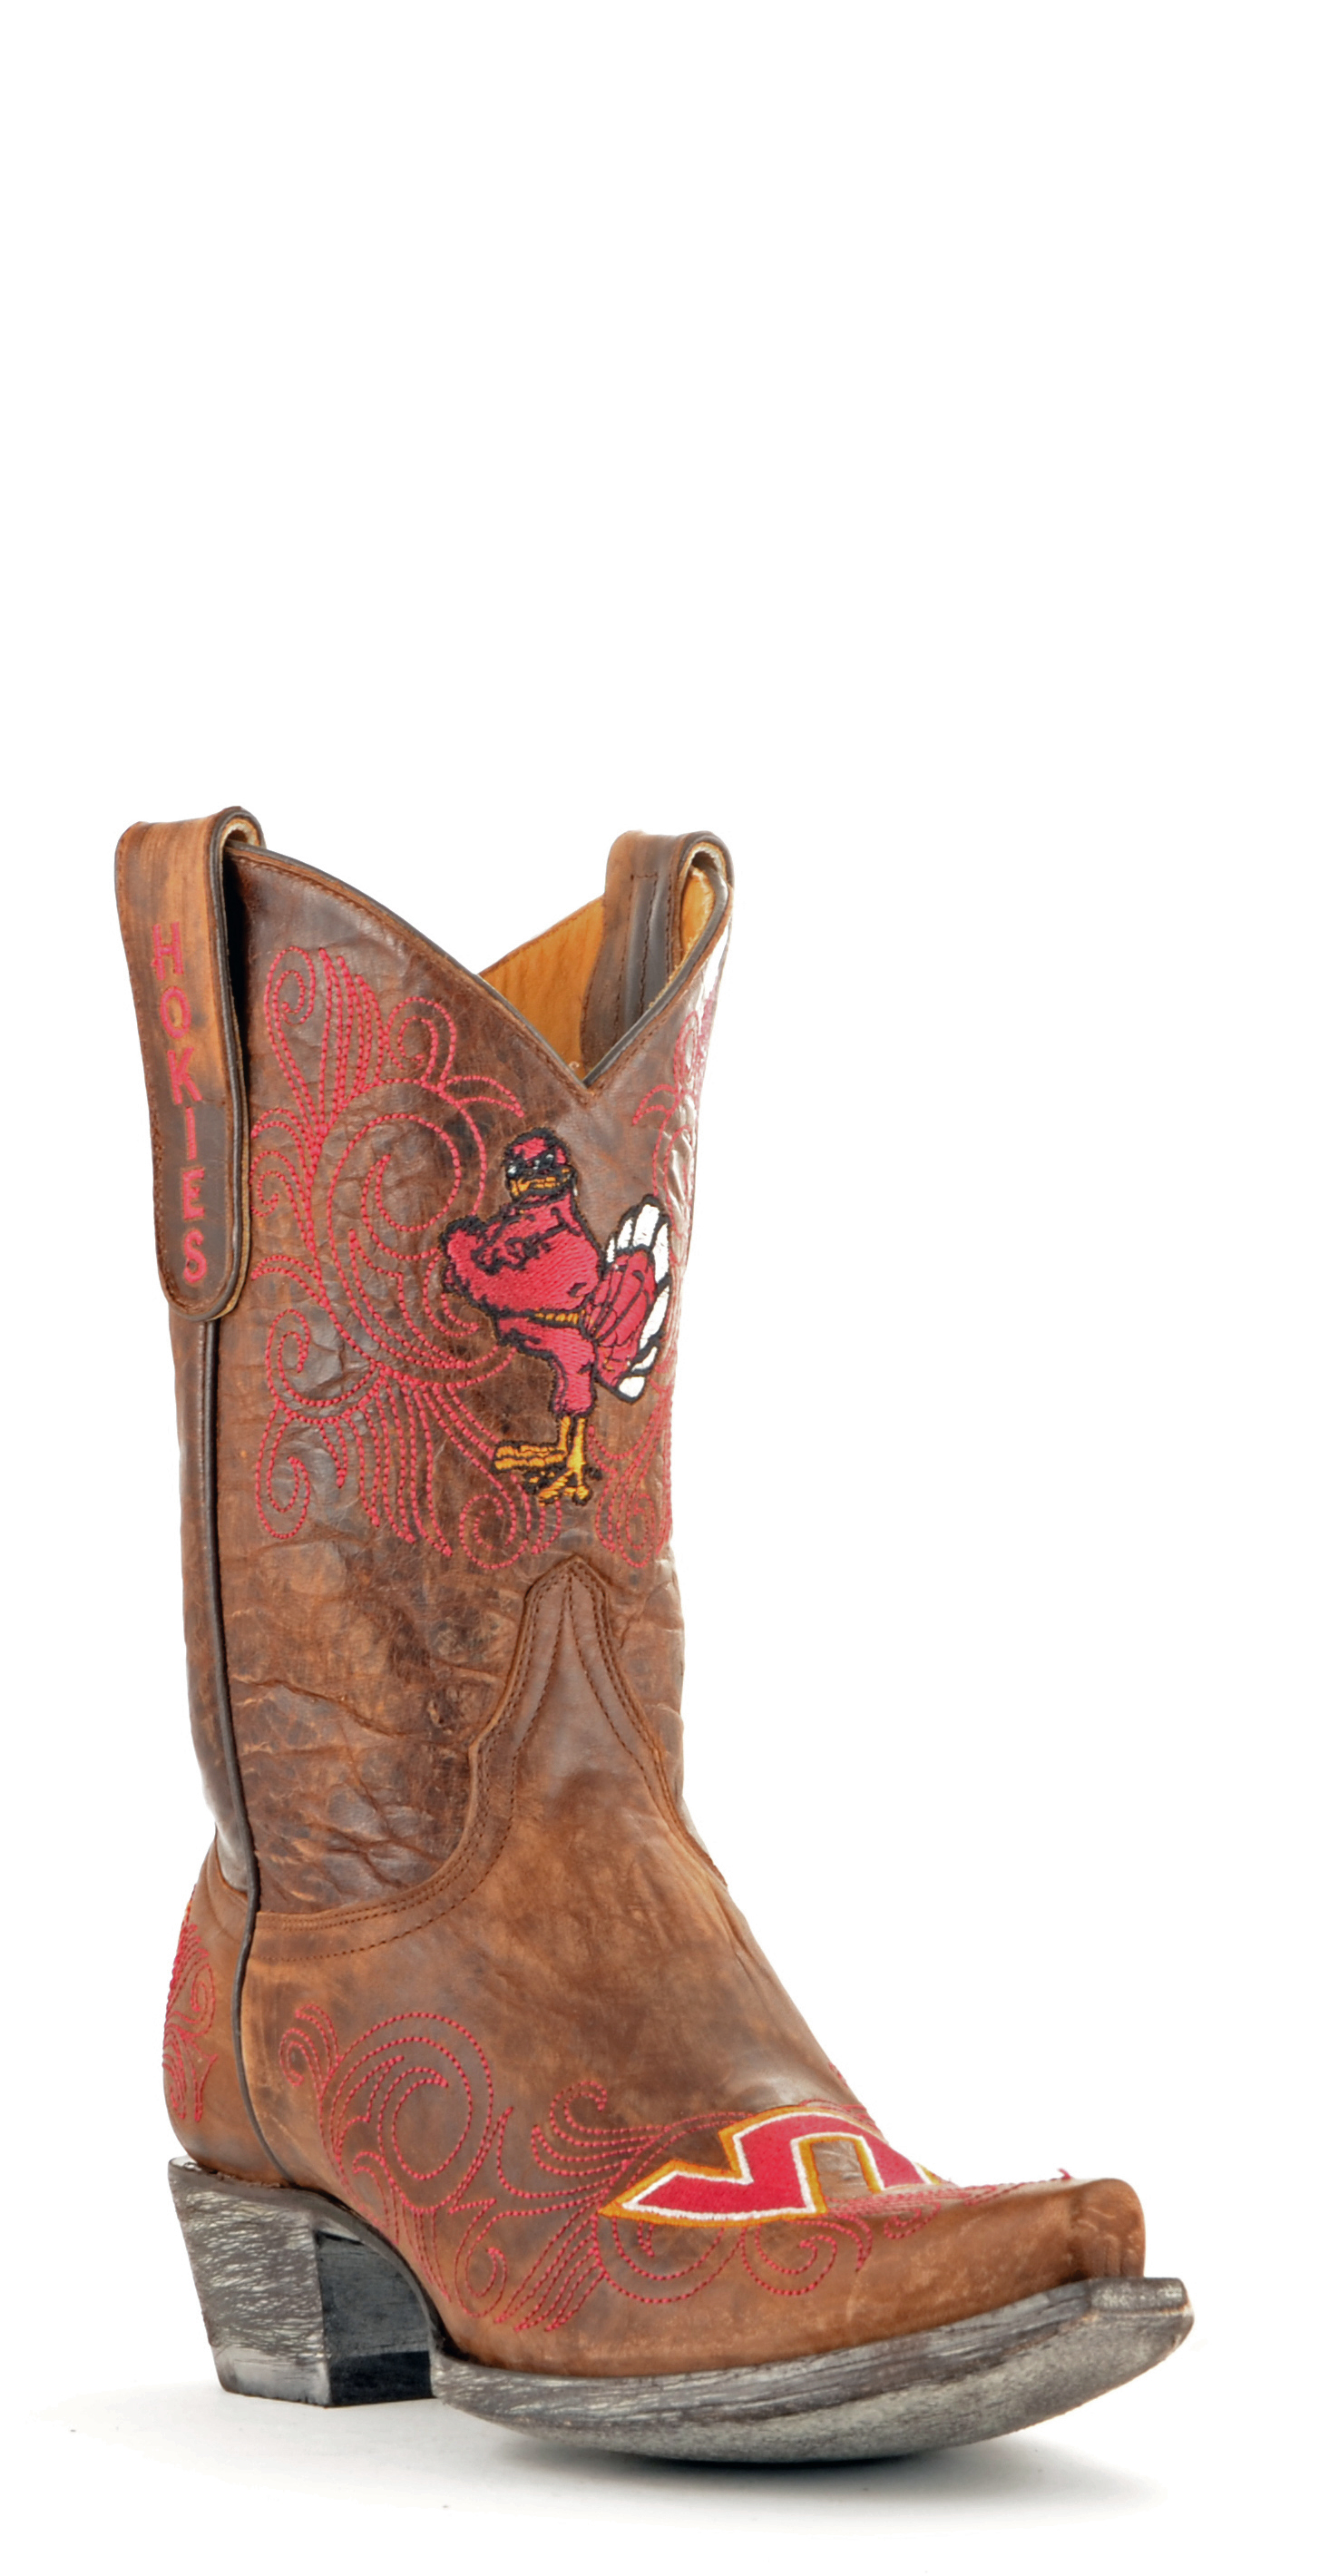 Gameday Boots Womens College Team Virginia Tech Hokies Brass VT-L226-1 by GameDay Boots